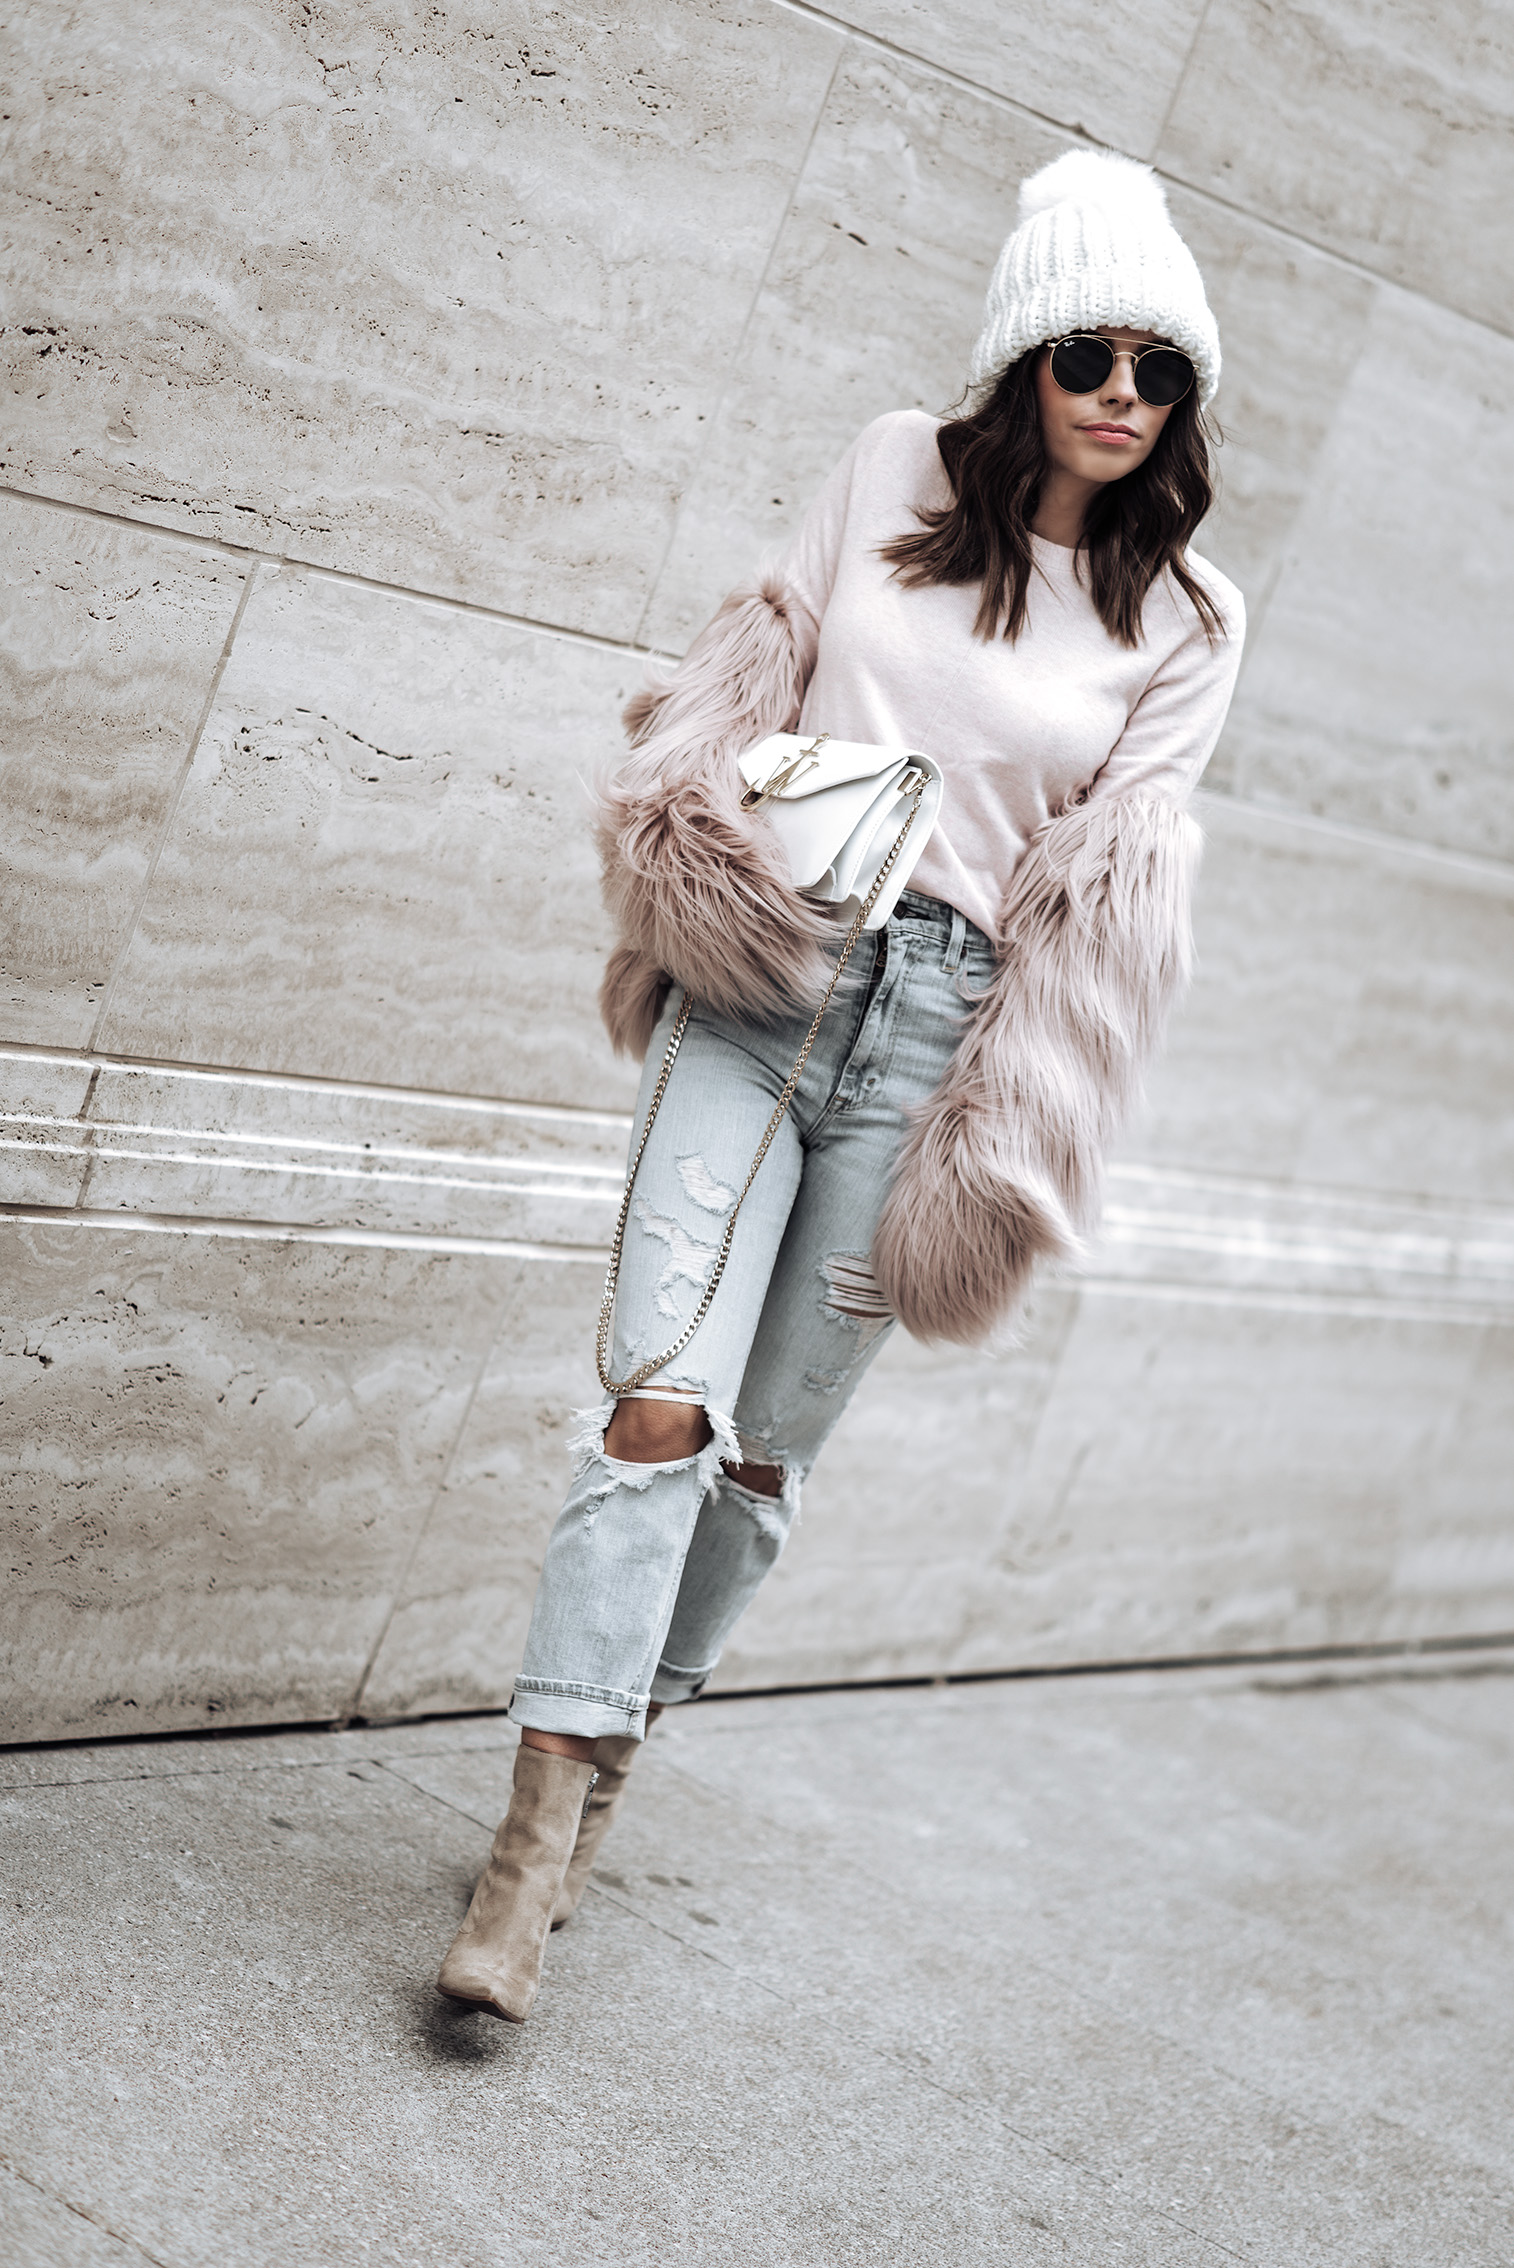 monochrome style | High Rise Ankle Strait Jeans | Italian Super Soft Classic Crew Sweater by Banana Republic  {C/O} | Kendall + Kylie Fallyn Bootie | Unreal Fur Dream Jacket | J.W. Anderson Logo Bag | Sunglasses